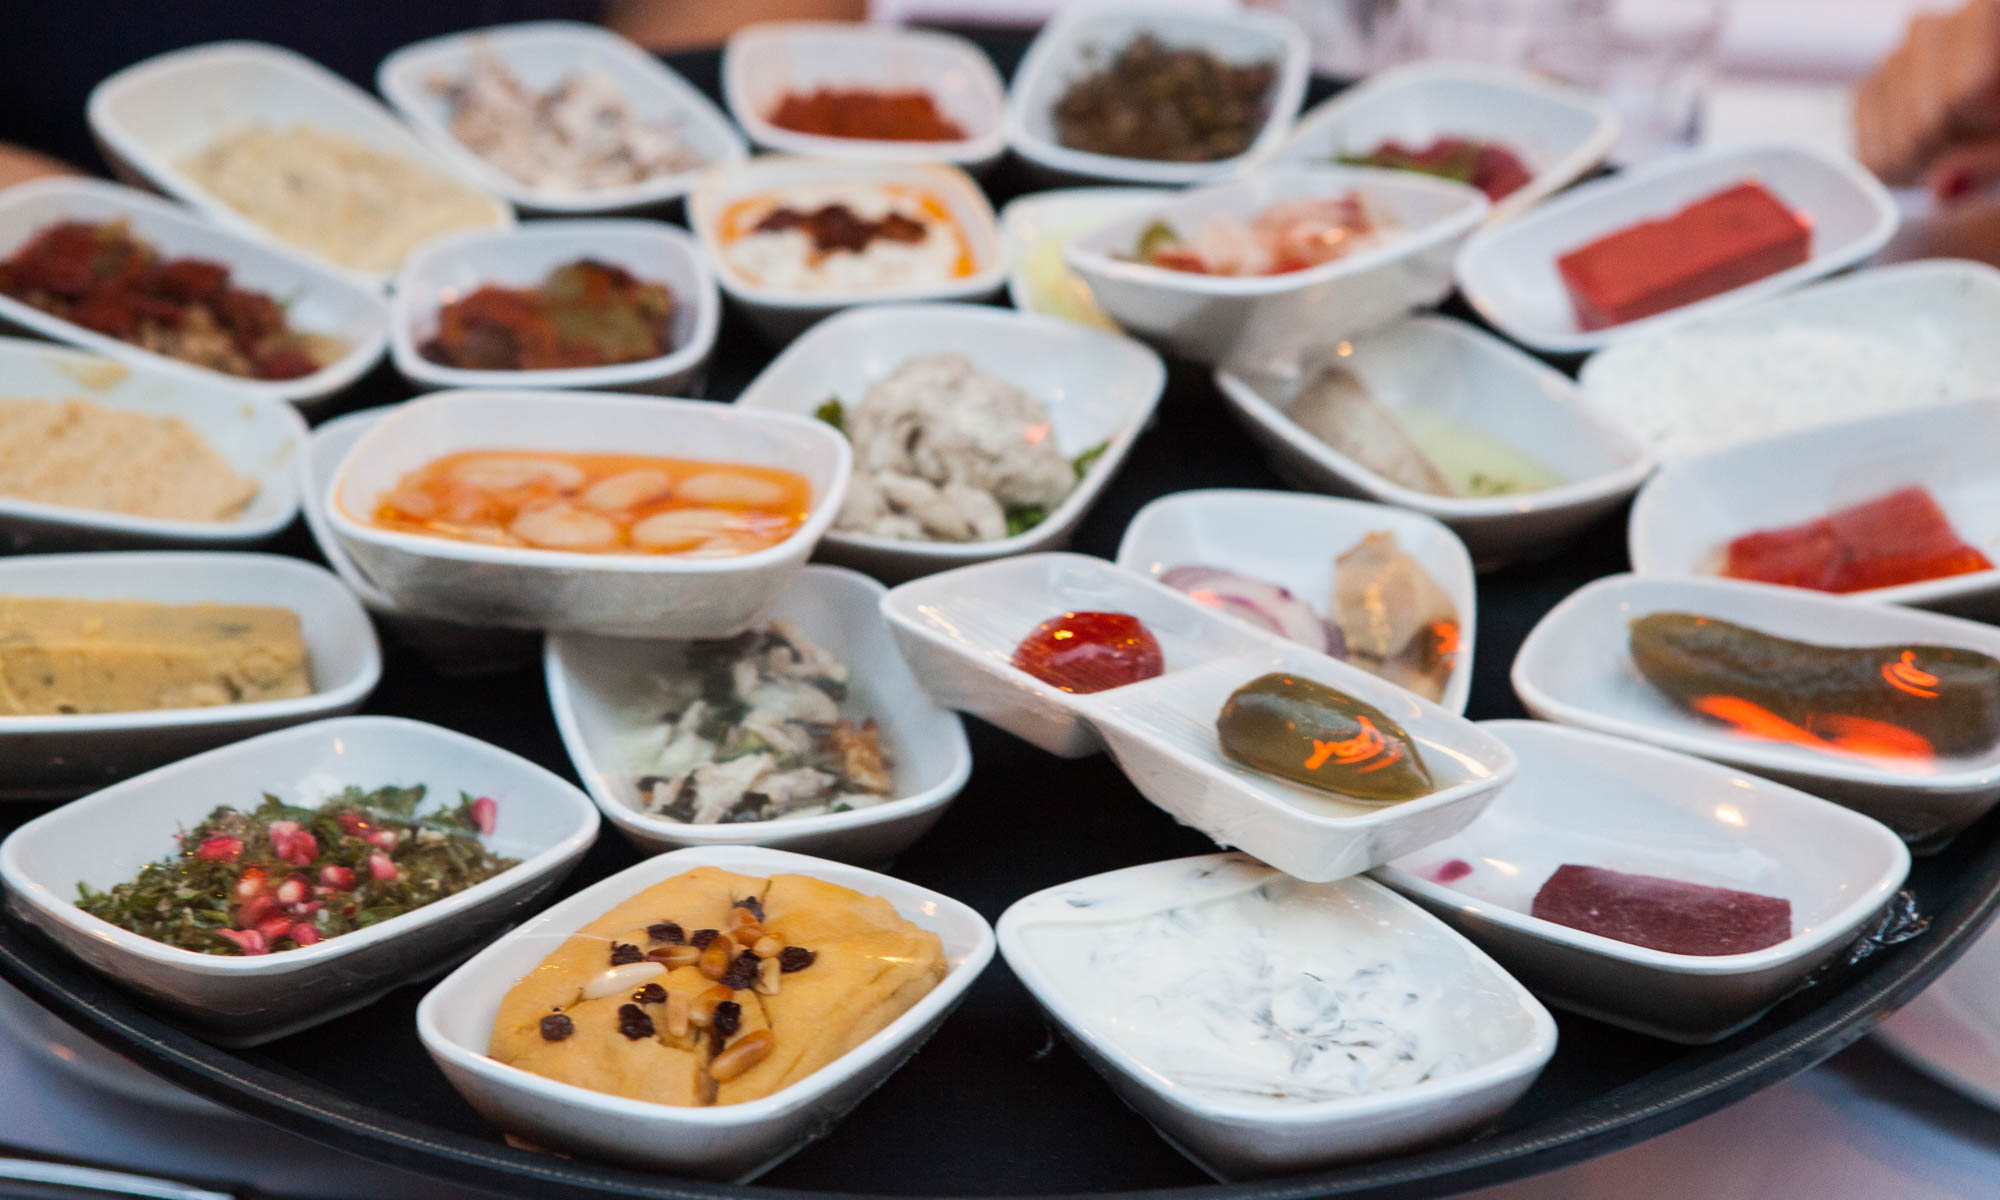 Spread of small plates of Turkish meze